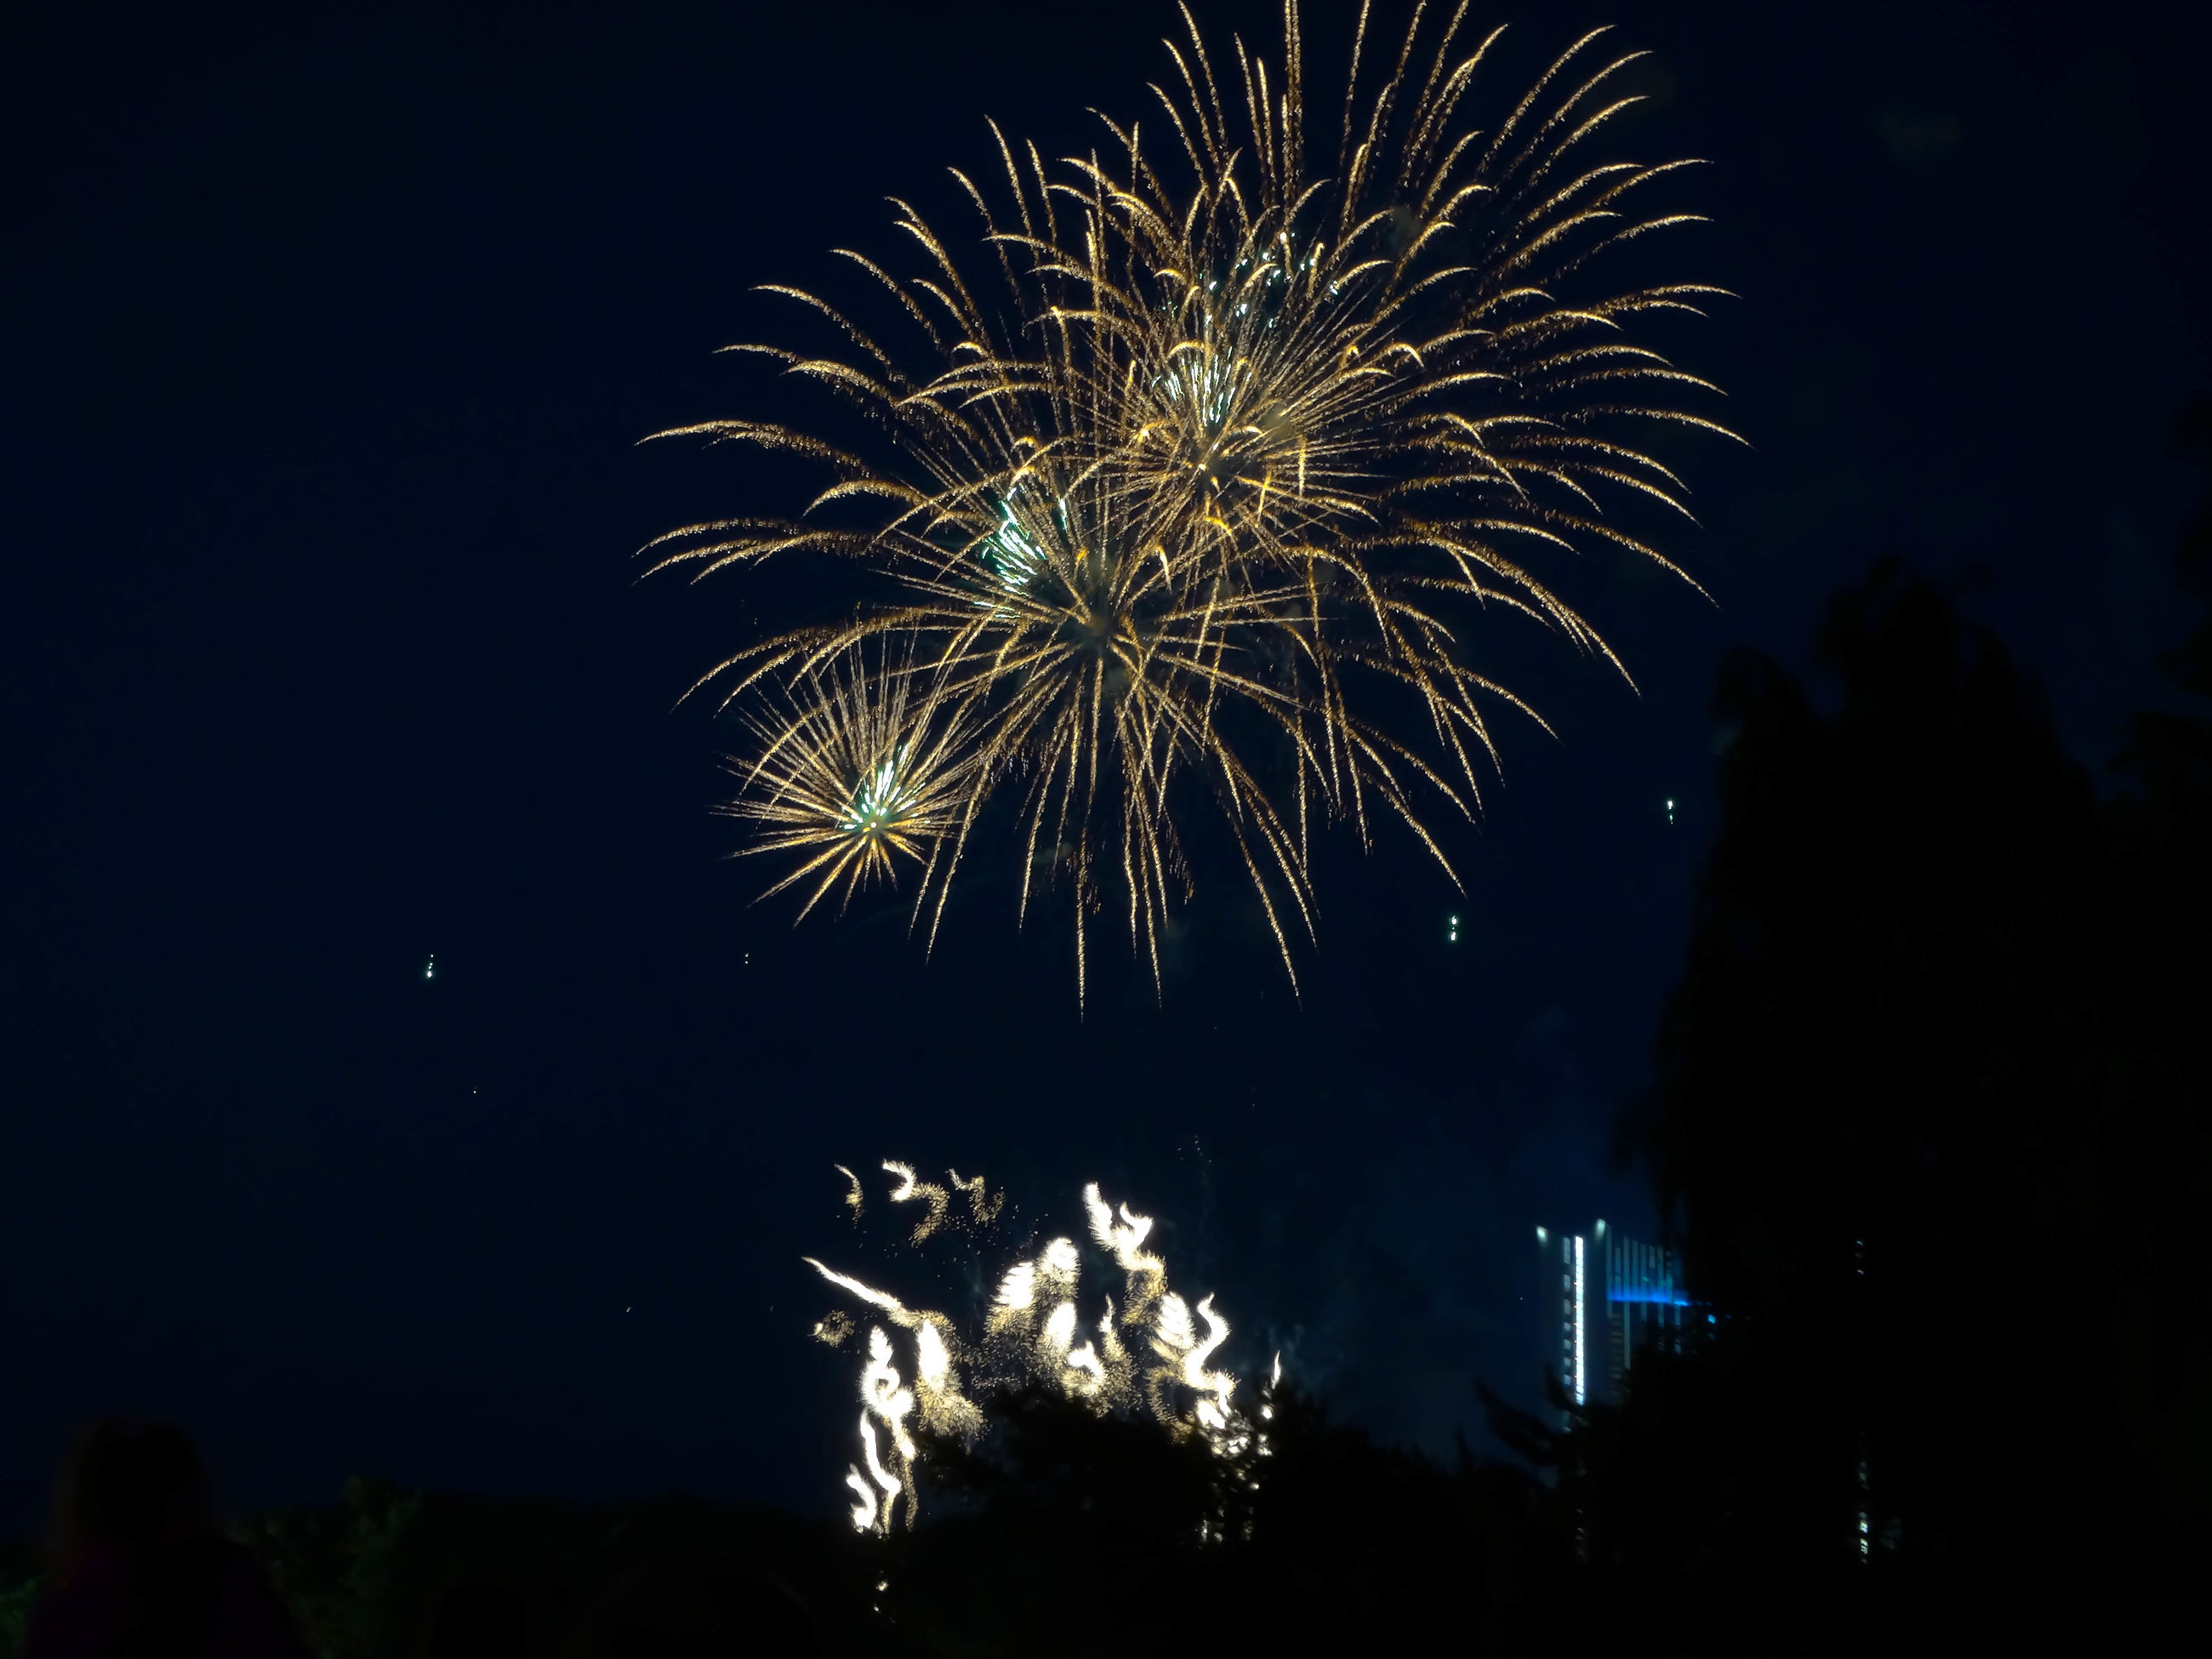 night, firework display, illuminated, exploding, celebration, firework - man made object, long exposure, arts culture and entertainment, motion, event, low angle view, sparks, glowing, firework, blurred motion, entertainment, sky, celebration event, outdoors, building exterior